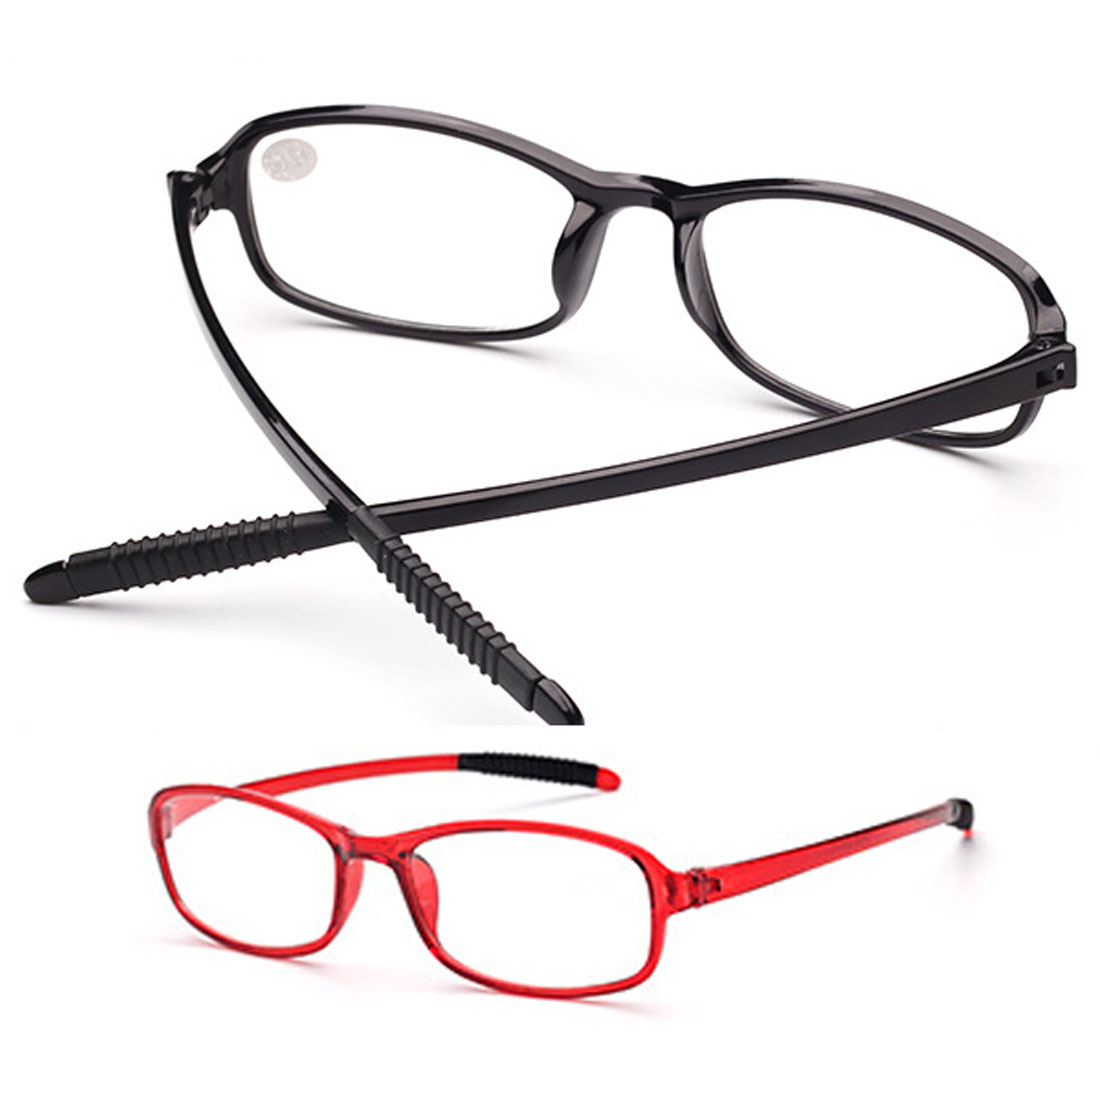 1PC New TR90 Women Men Flexible Reading Glasses Readers Strength Presbyopic Glasses Ultralight Eyeglasses elders in Men 39 s Reading Glasses from Apparel Accessories